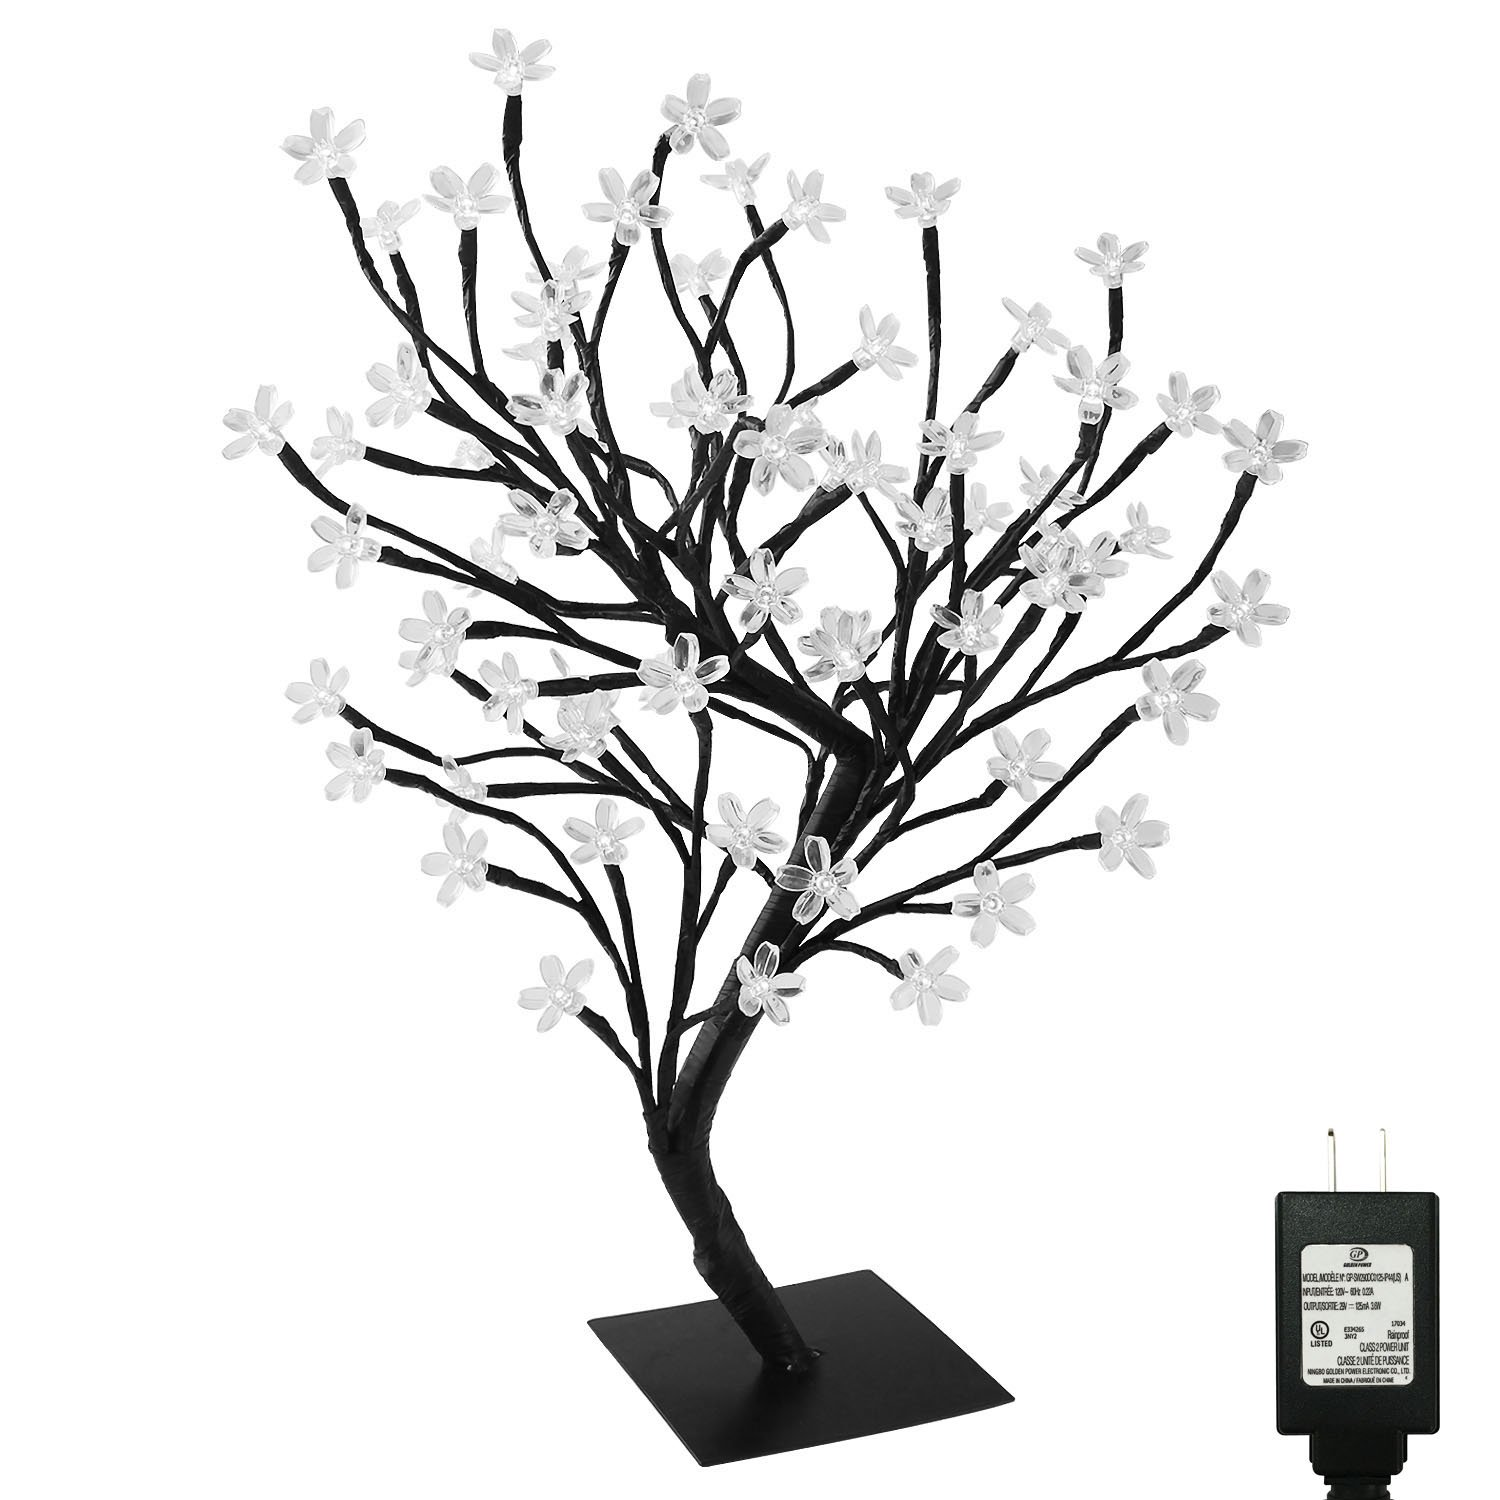 Pms 17inch 72 LEDs Cherry Blossom Desk Top Bonsai Tree Light with Low Voltage Transformer, UL Listed, Ideal for Christmas, Party, Wedding, Ceremony, Celebration Decoration (Day White)